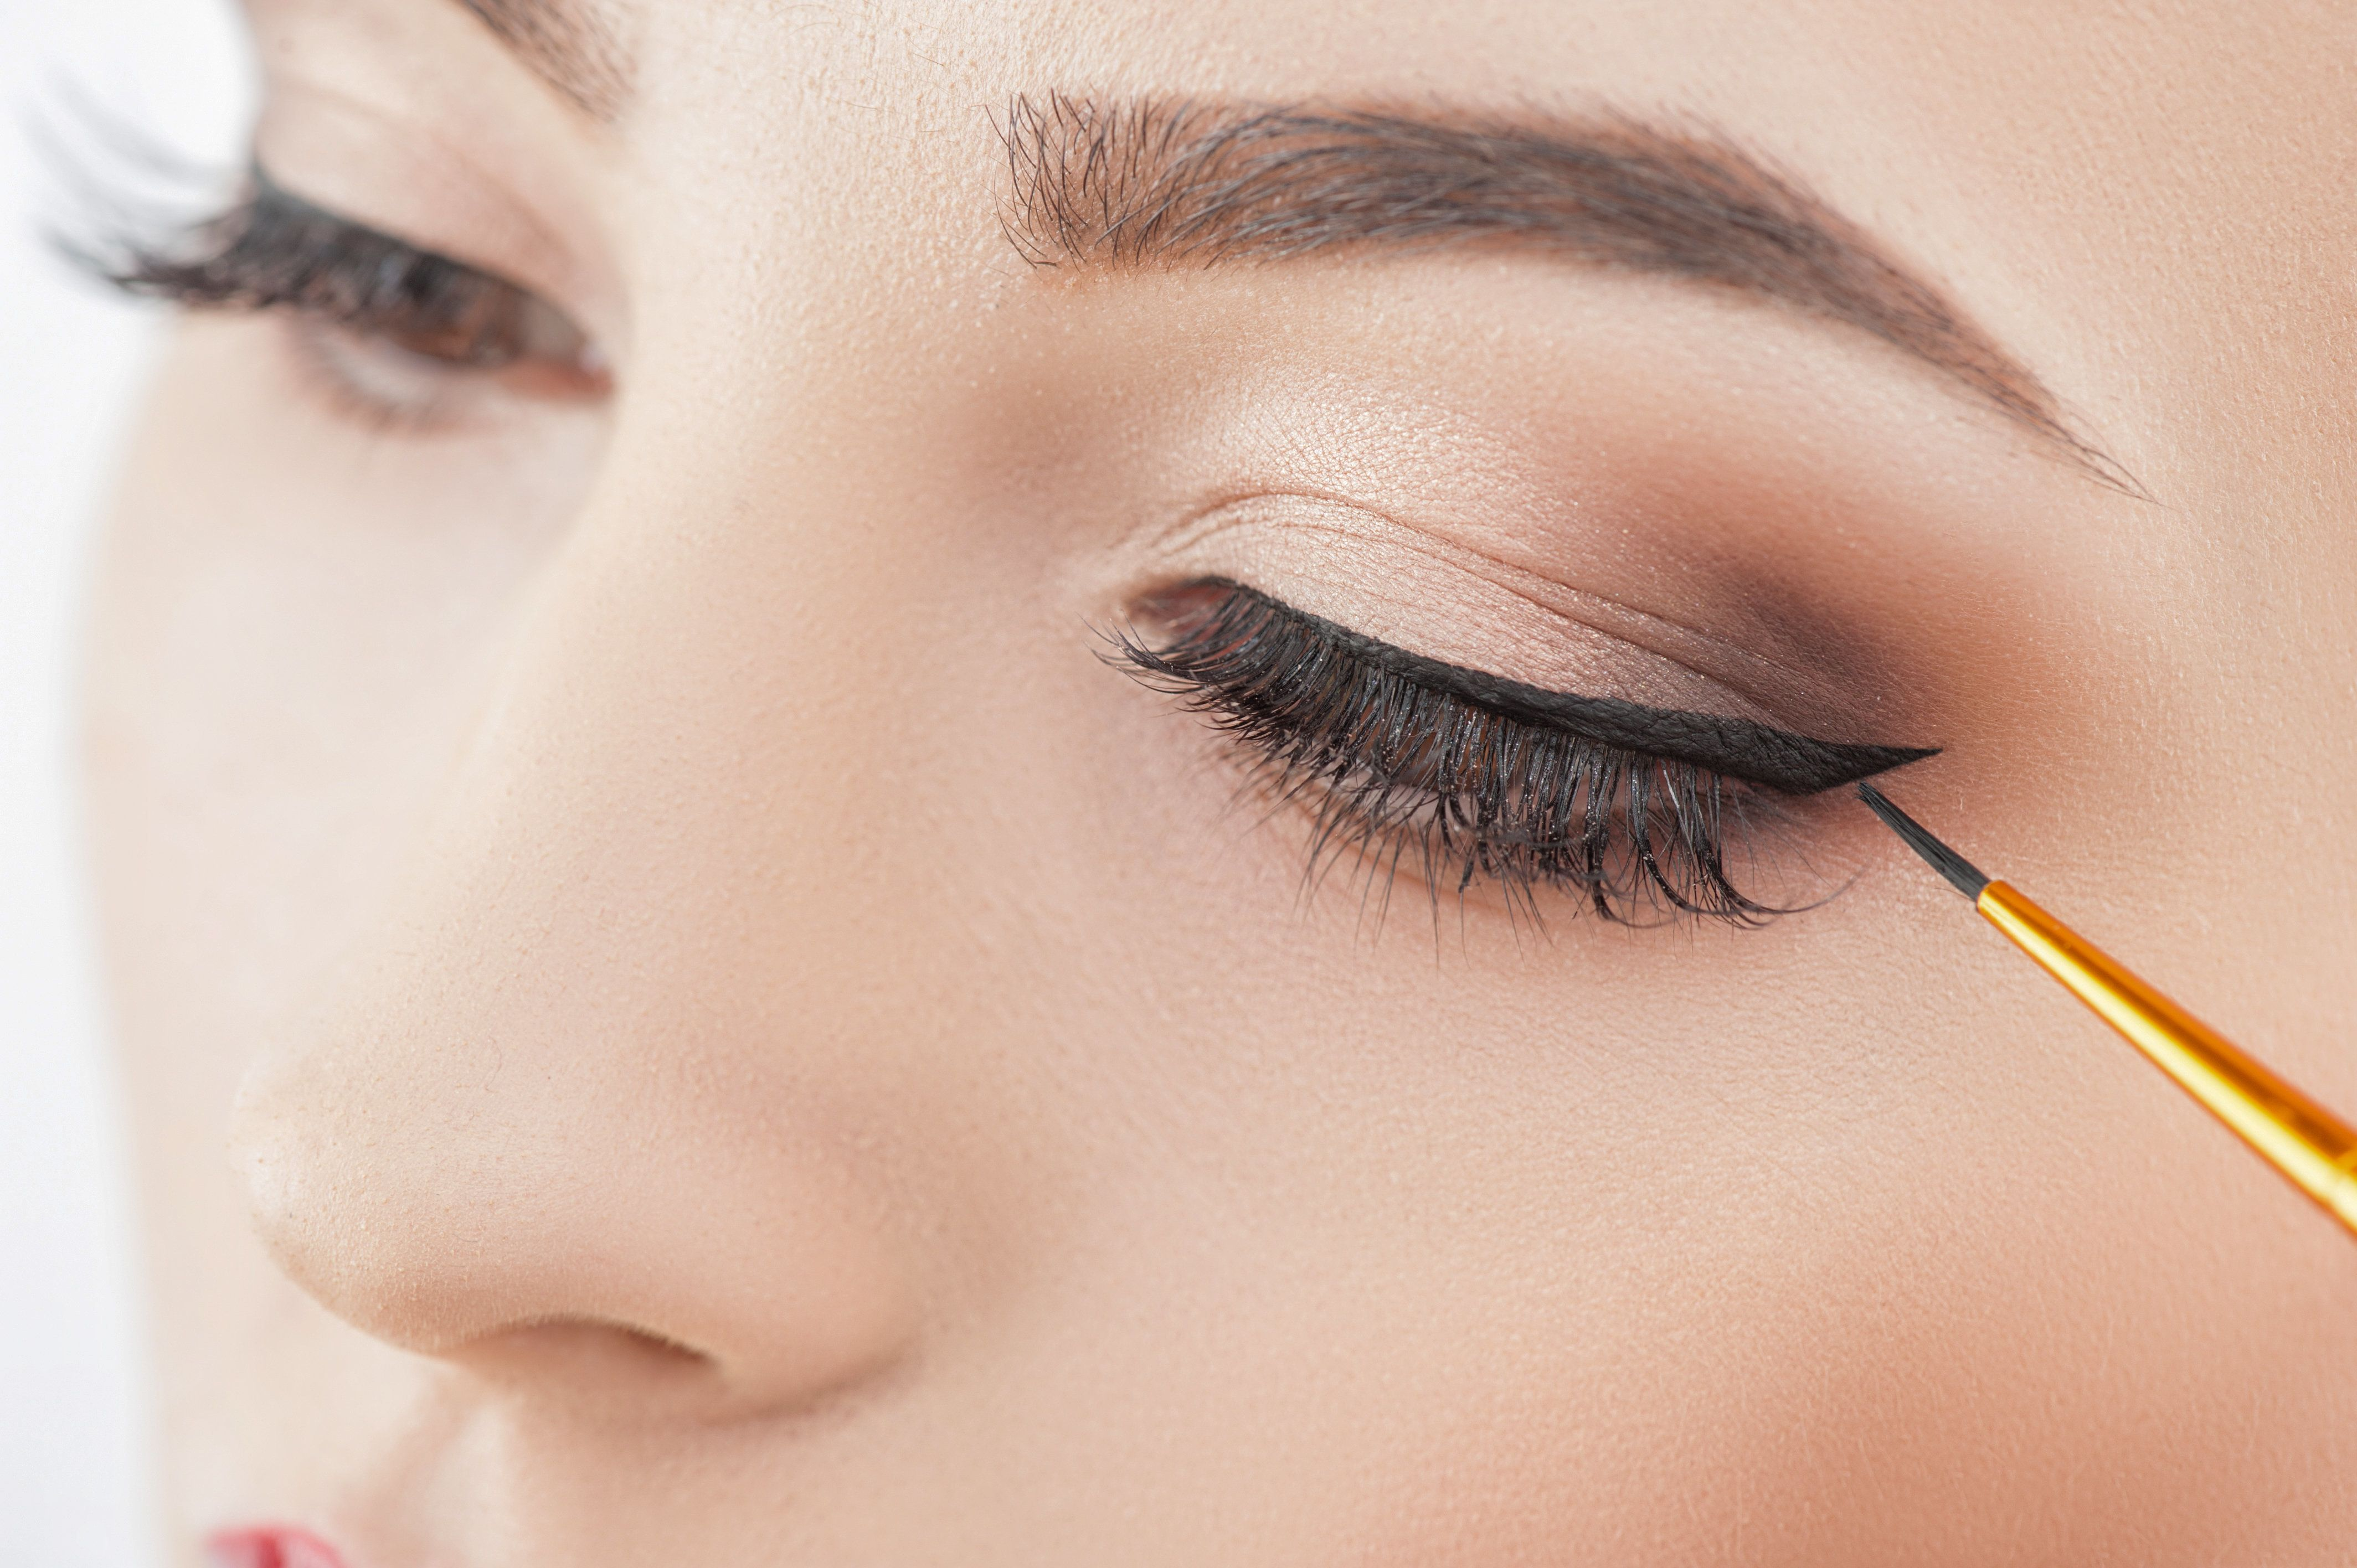 Using A Hair Pin To Perfectly Apply Winged Eyeliner Is The Game Changer We've All Been Waiting